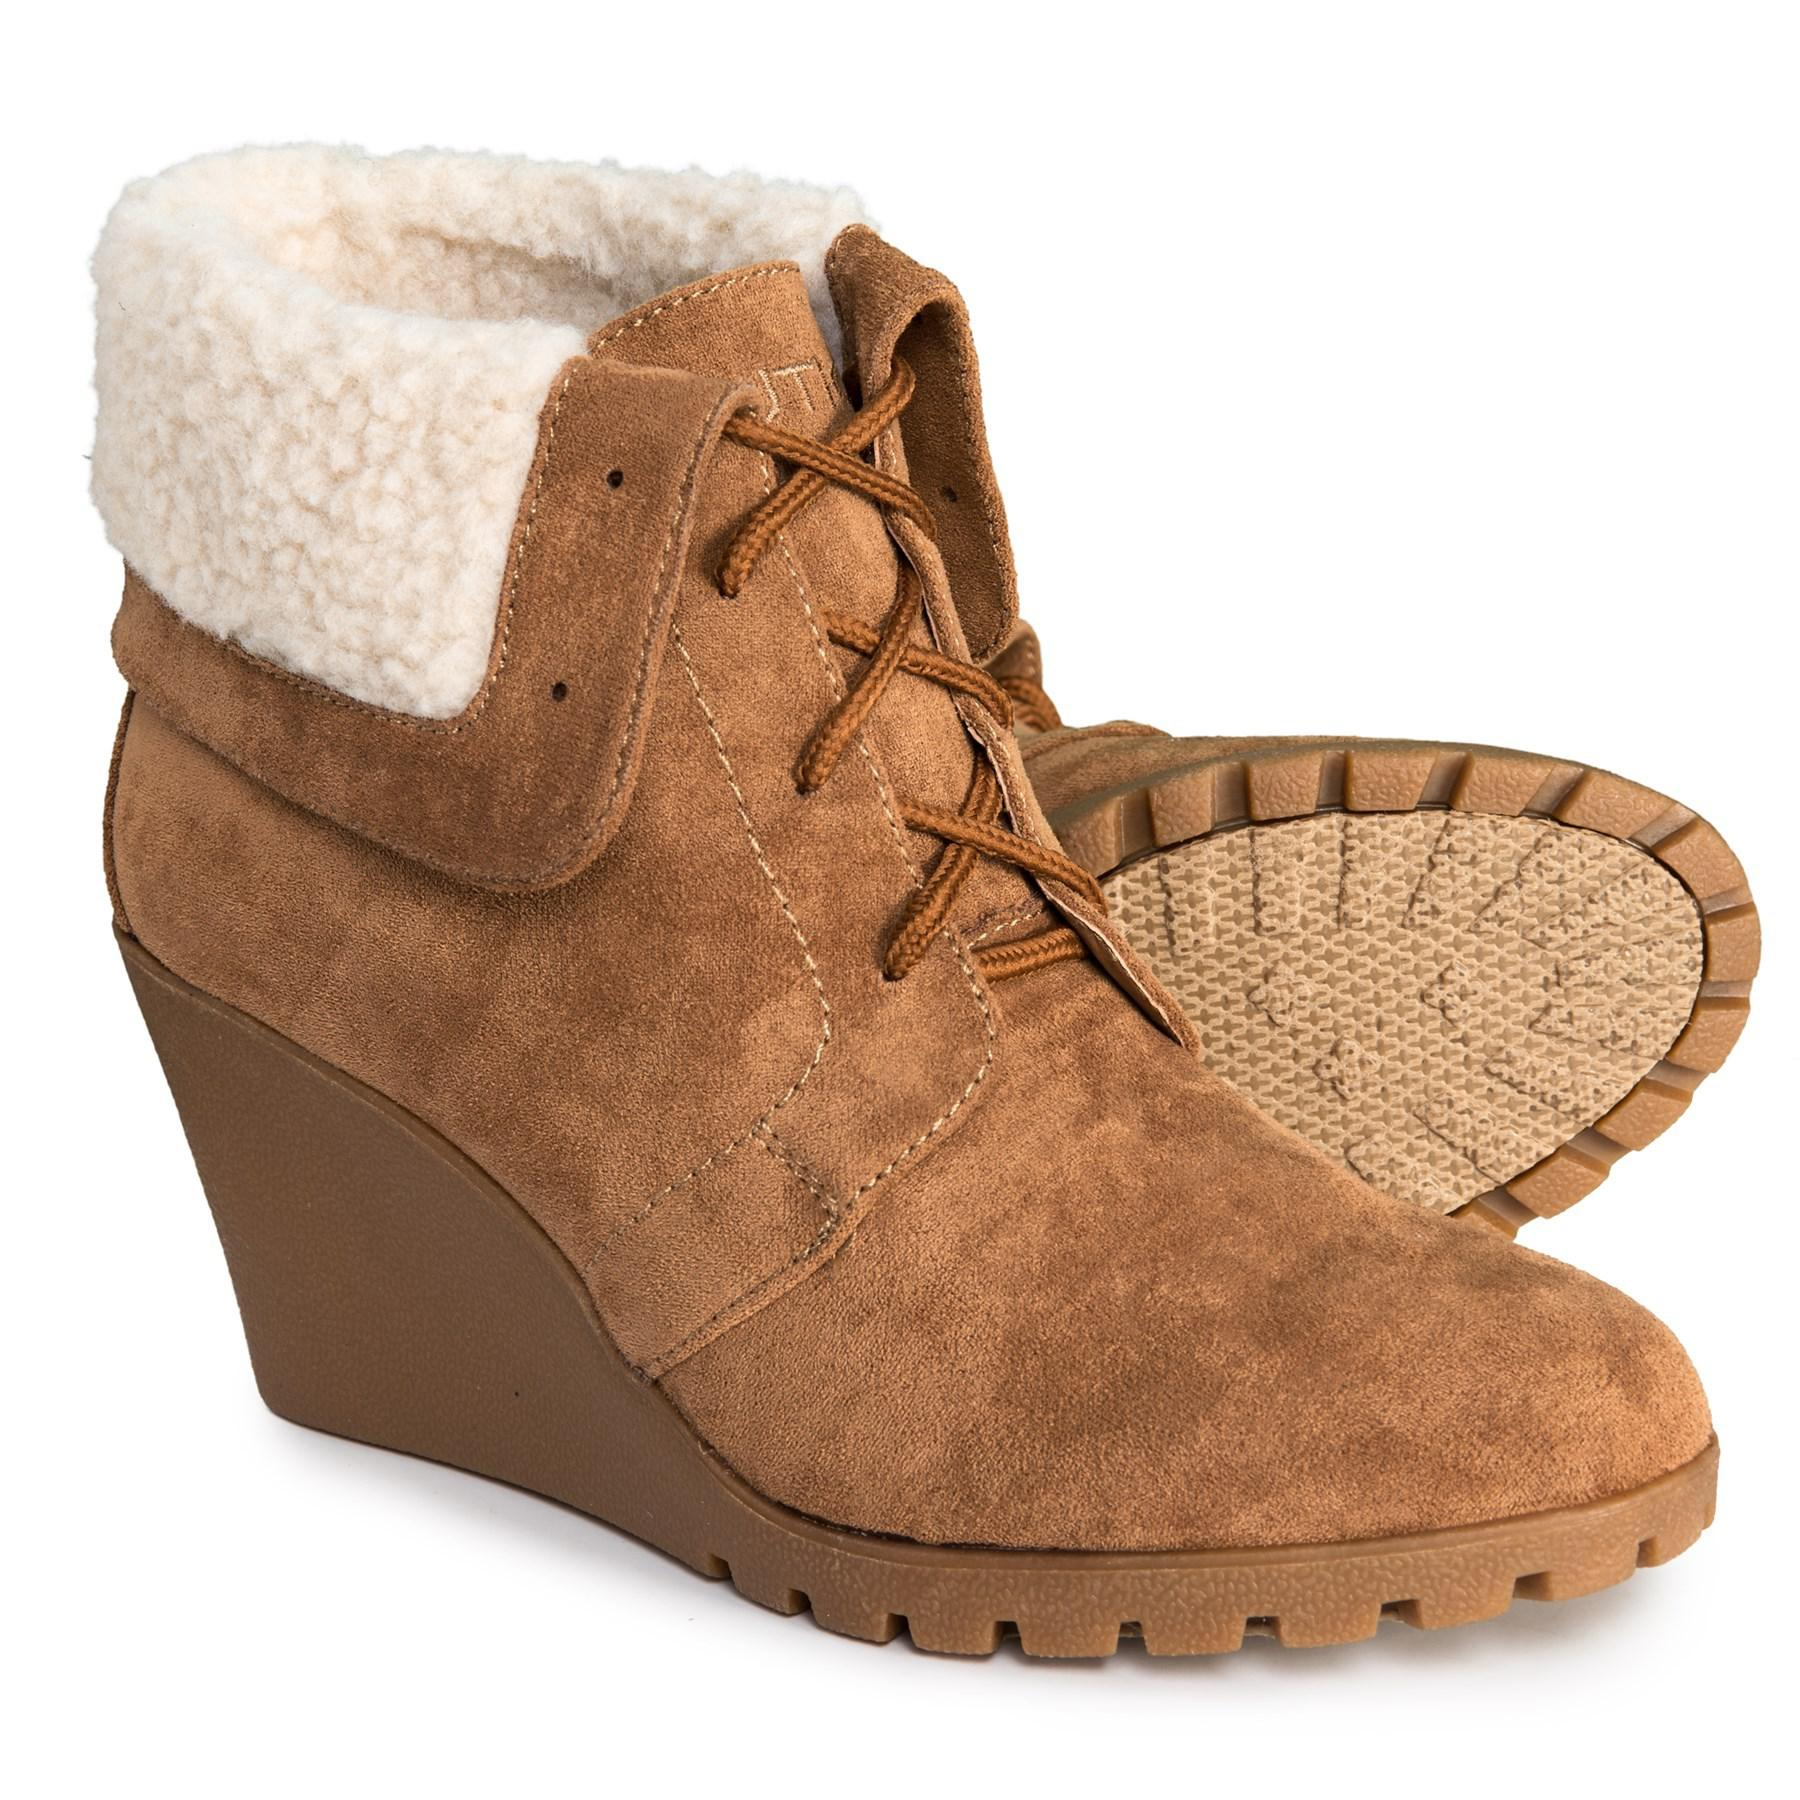 7aa8a0d9641 Lyst - Nautica New Rendon Wedge Ankle Boots (for Women) in Brown